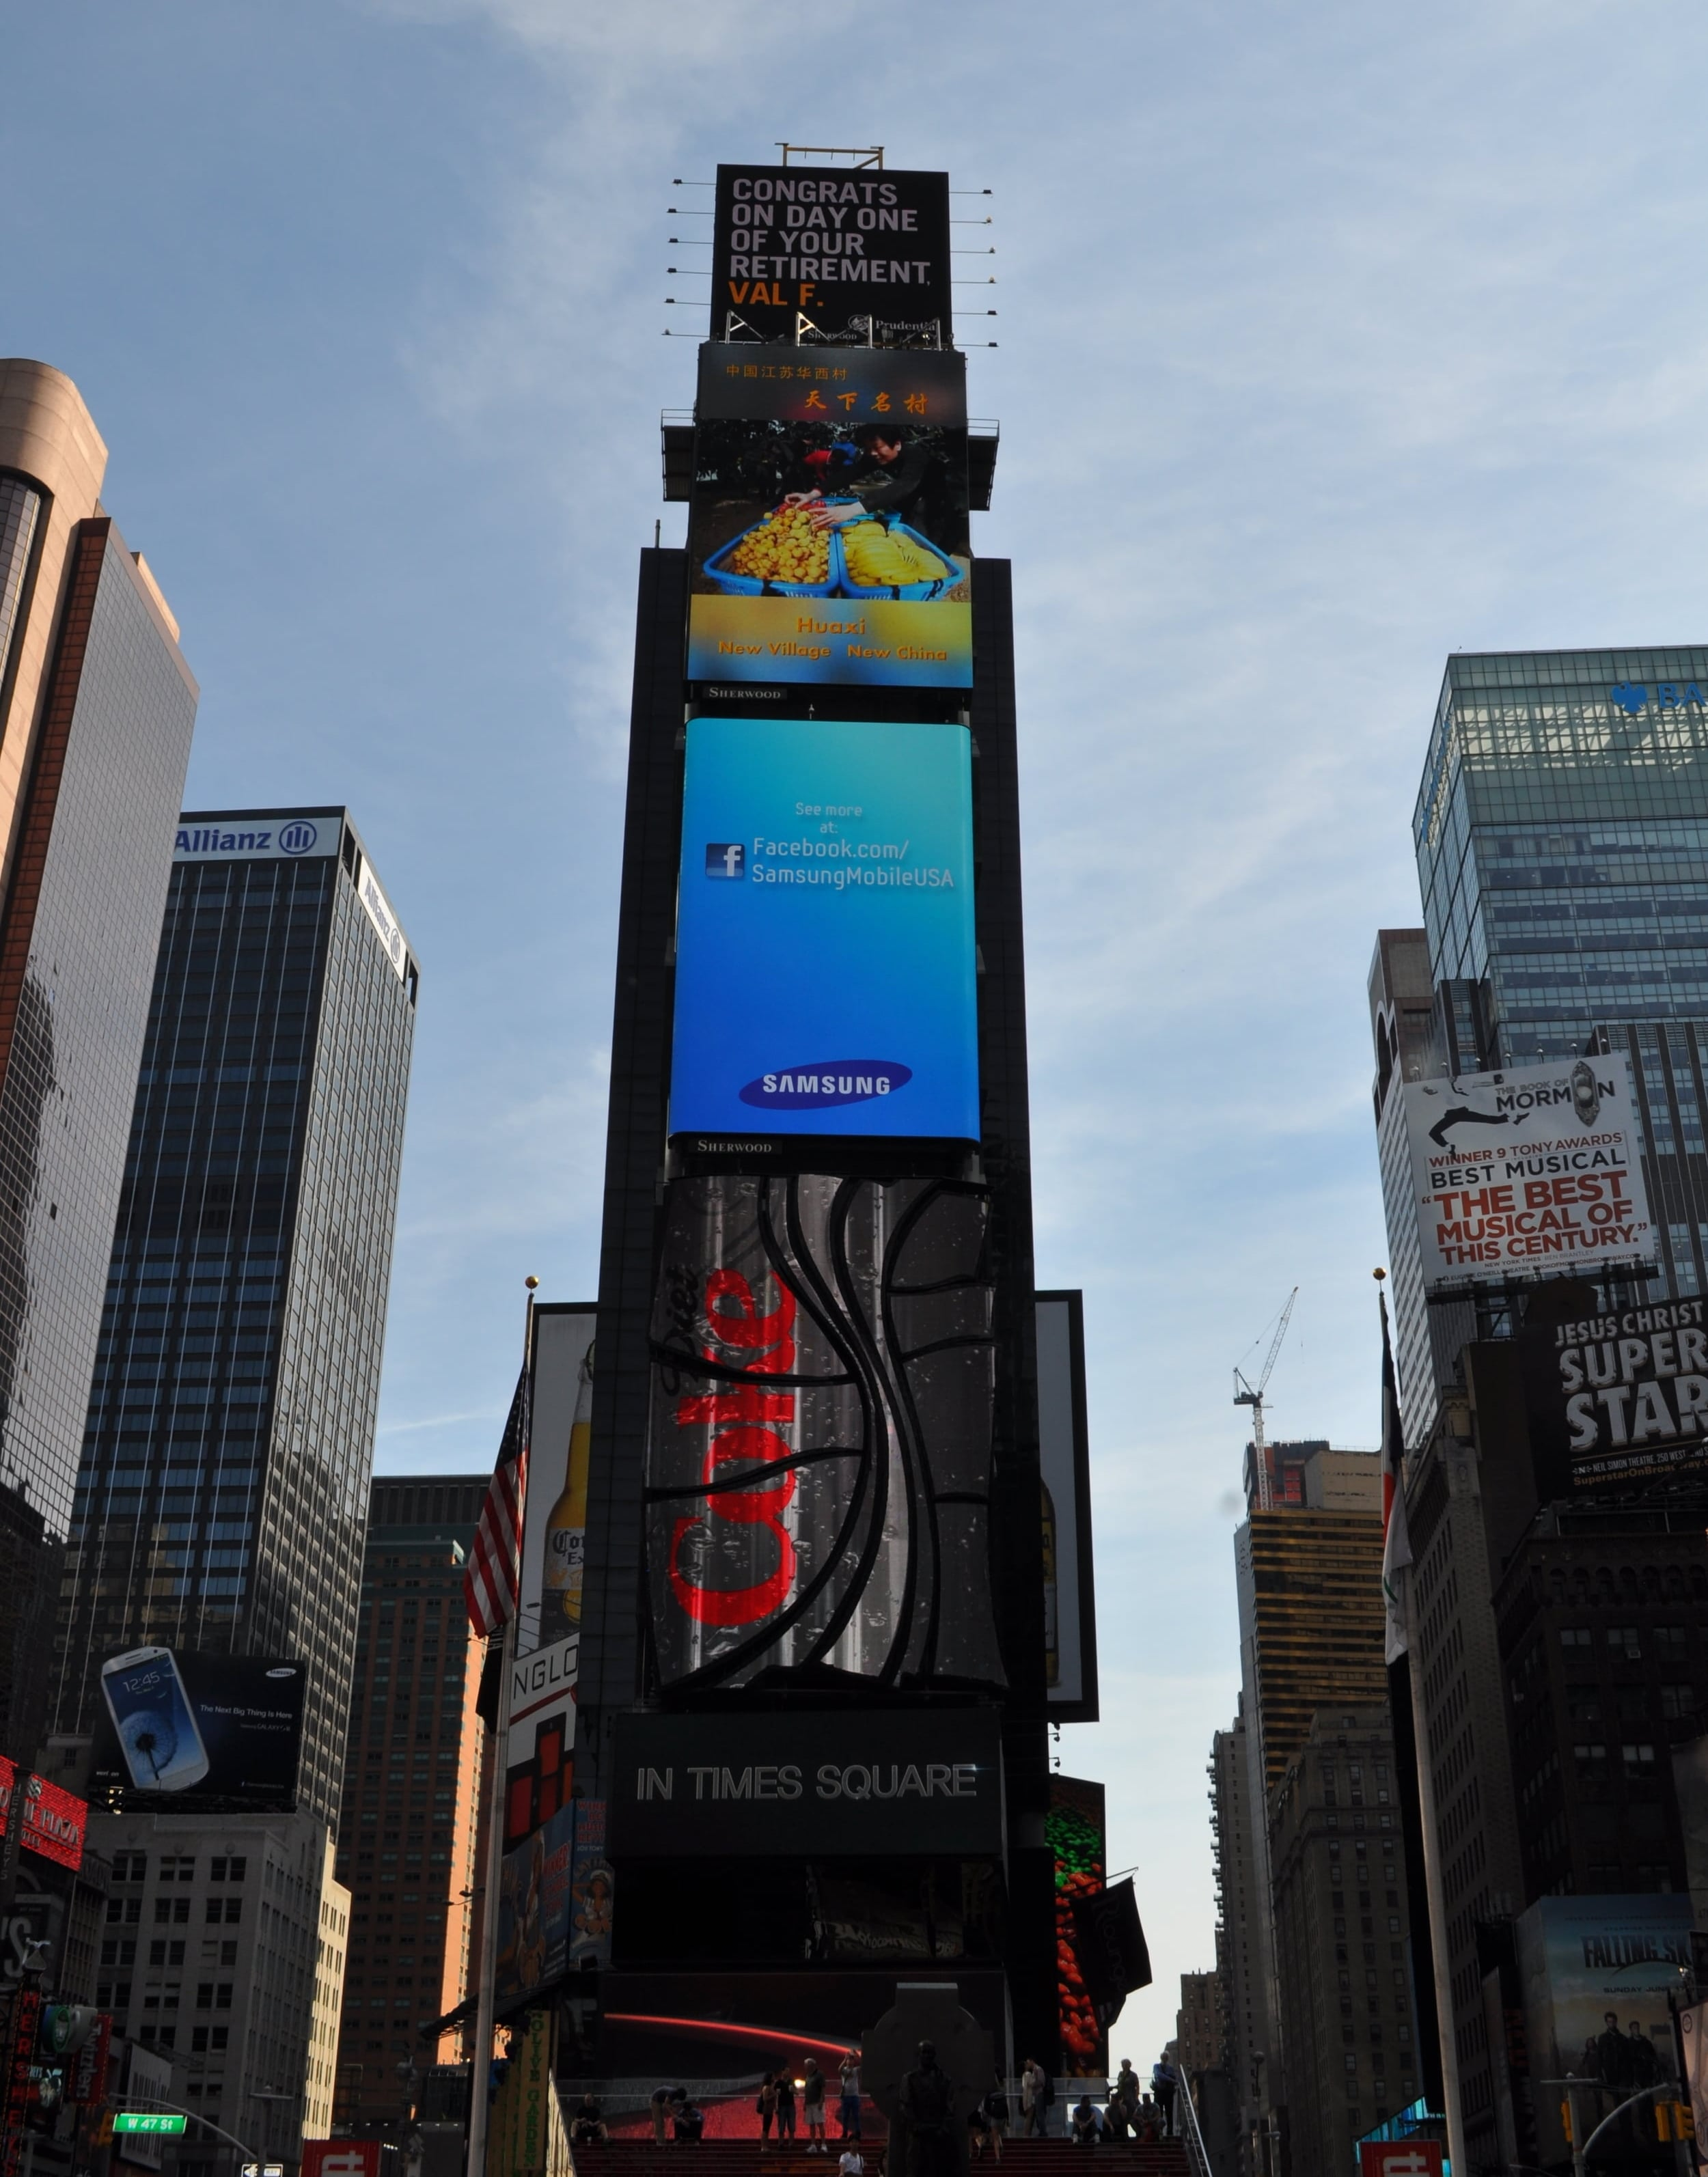 There is always something happening at Times Square. Photo: Pamy Rojas